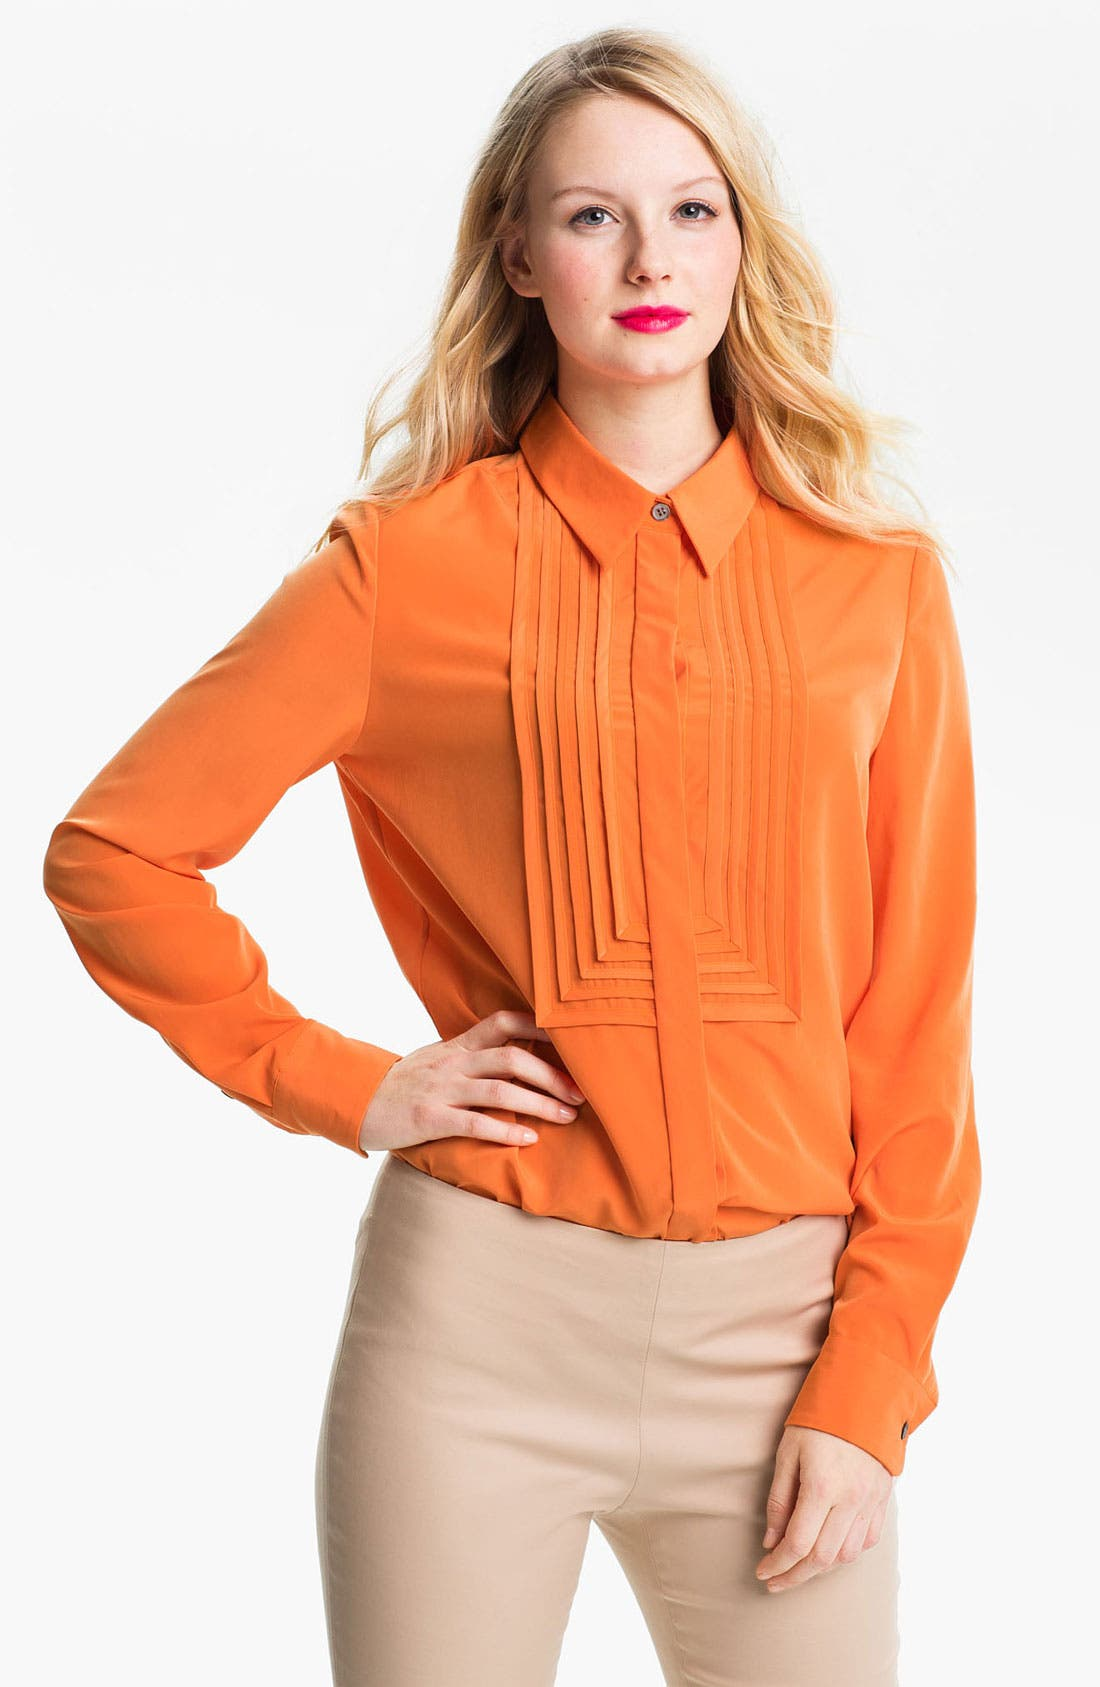 Alternate Image 1 Selected - Vince Camuto Pleat Bib Shirt